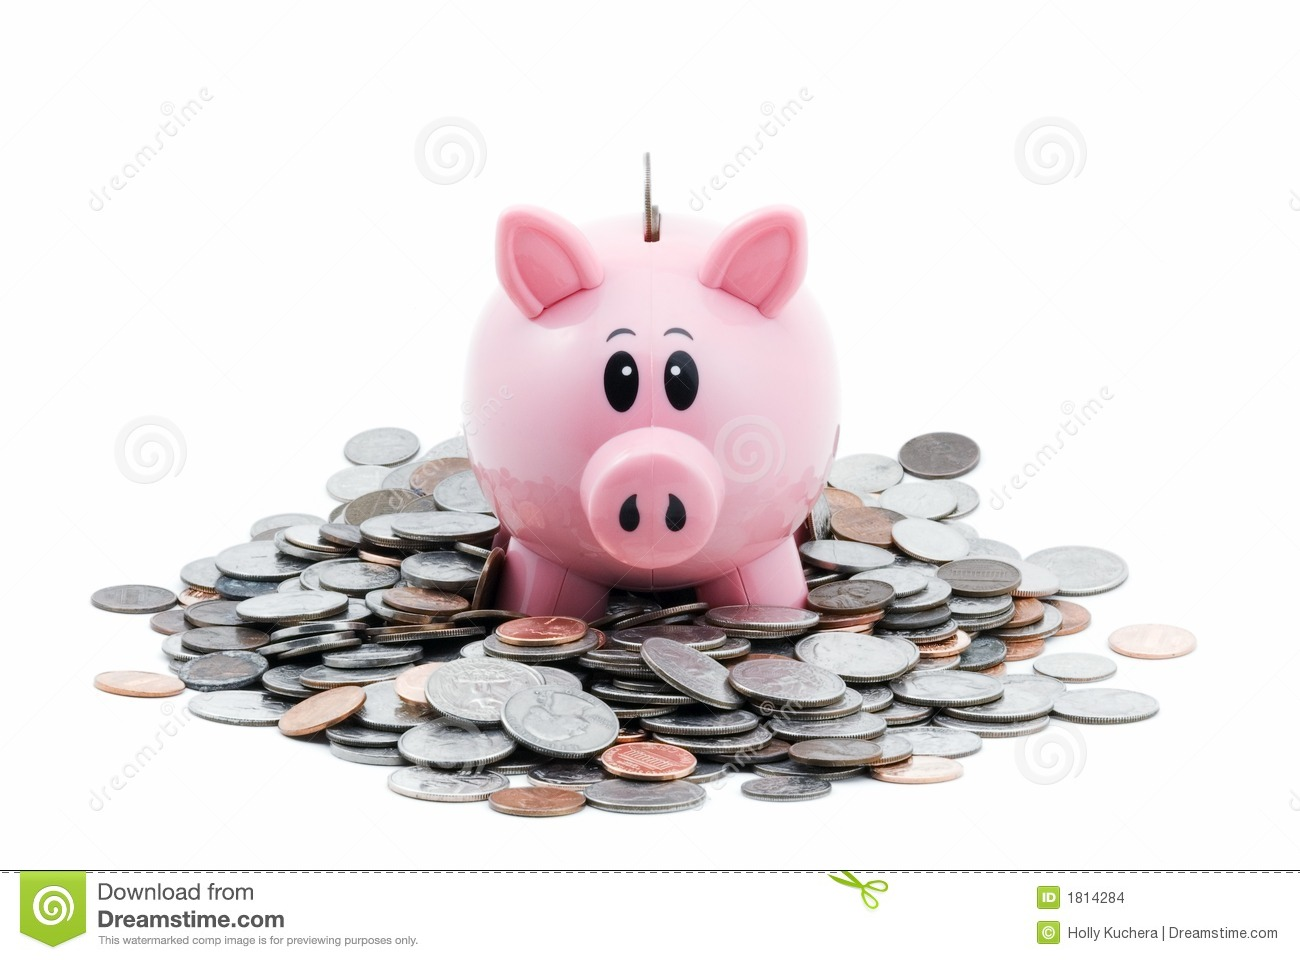 Piggy Bank In Pile Of Coins Stock Images - Image: 1814284